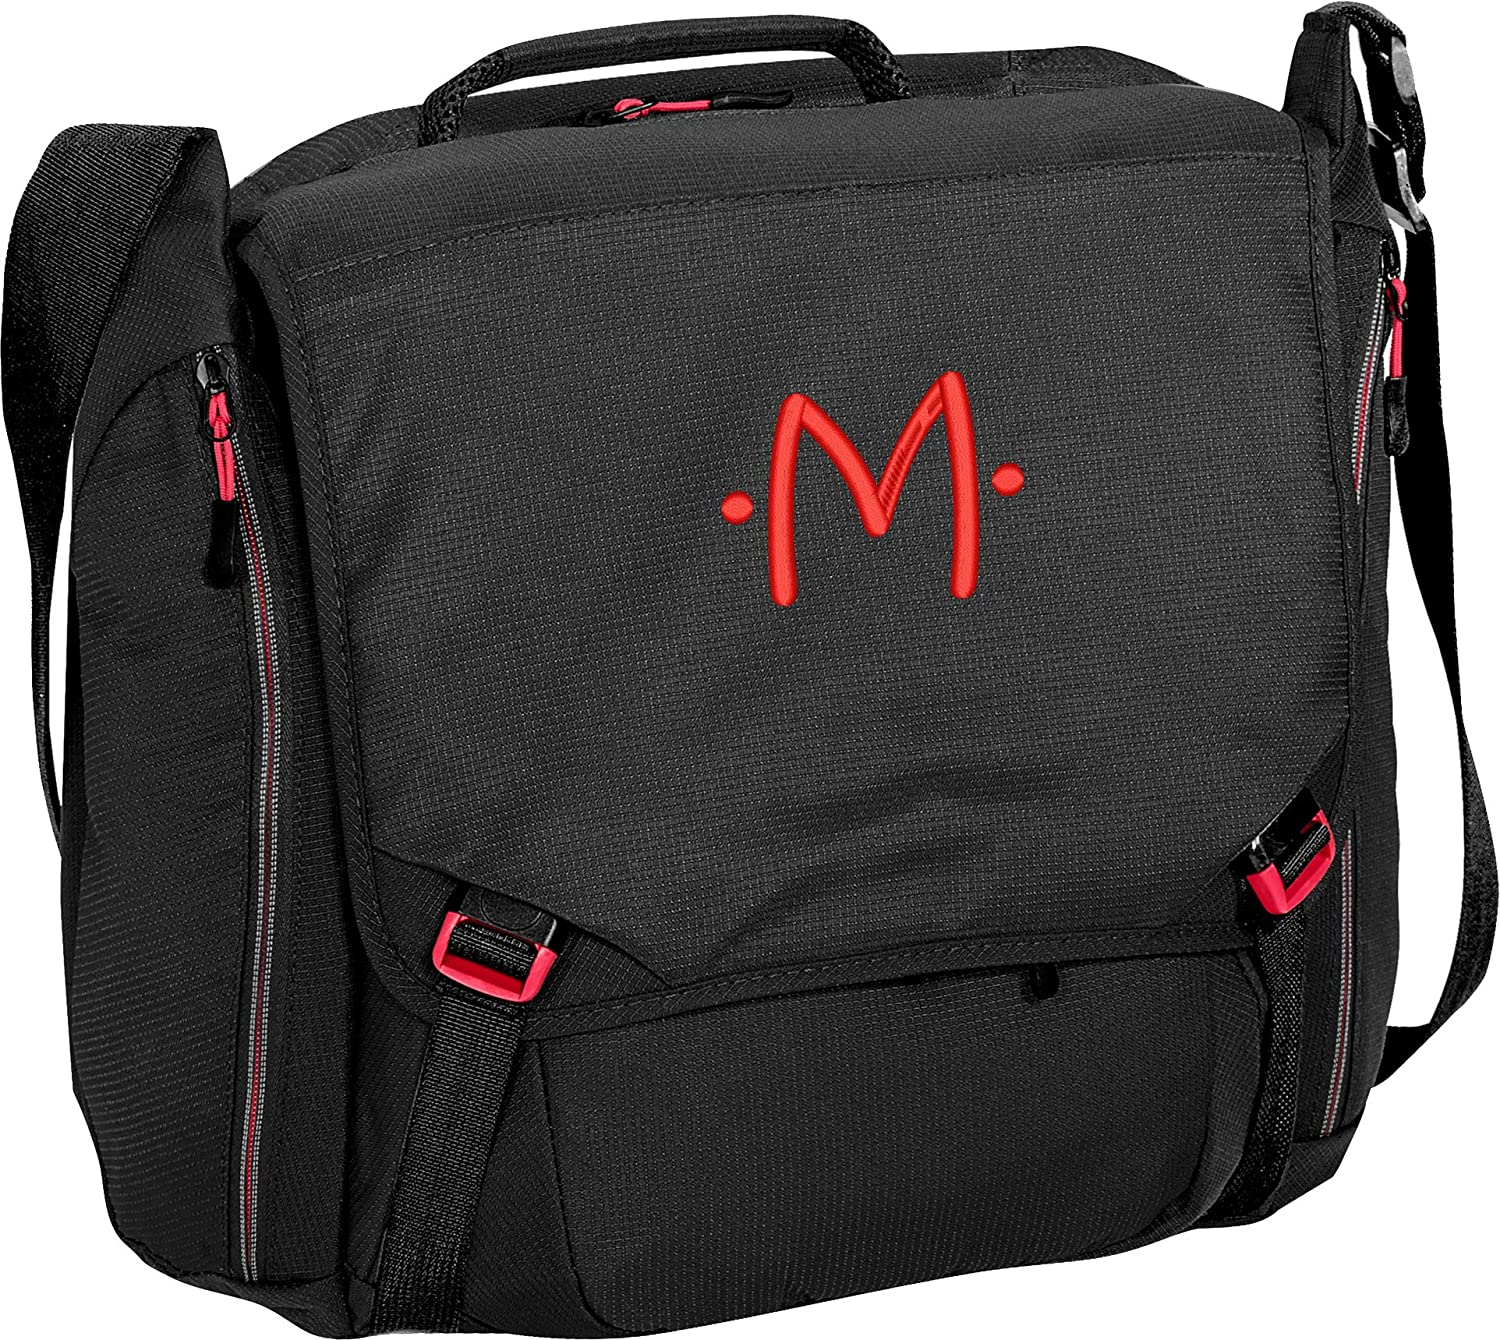 Monogrammed Black//Red Cyber Messenger Bag with Red Embroidered Initial M